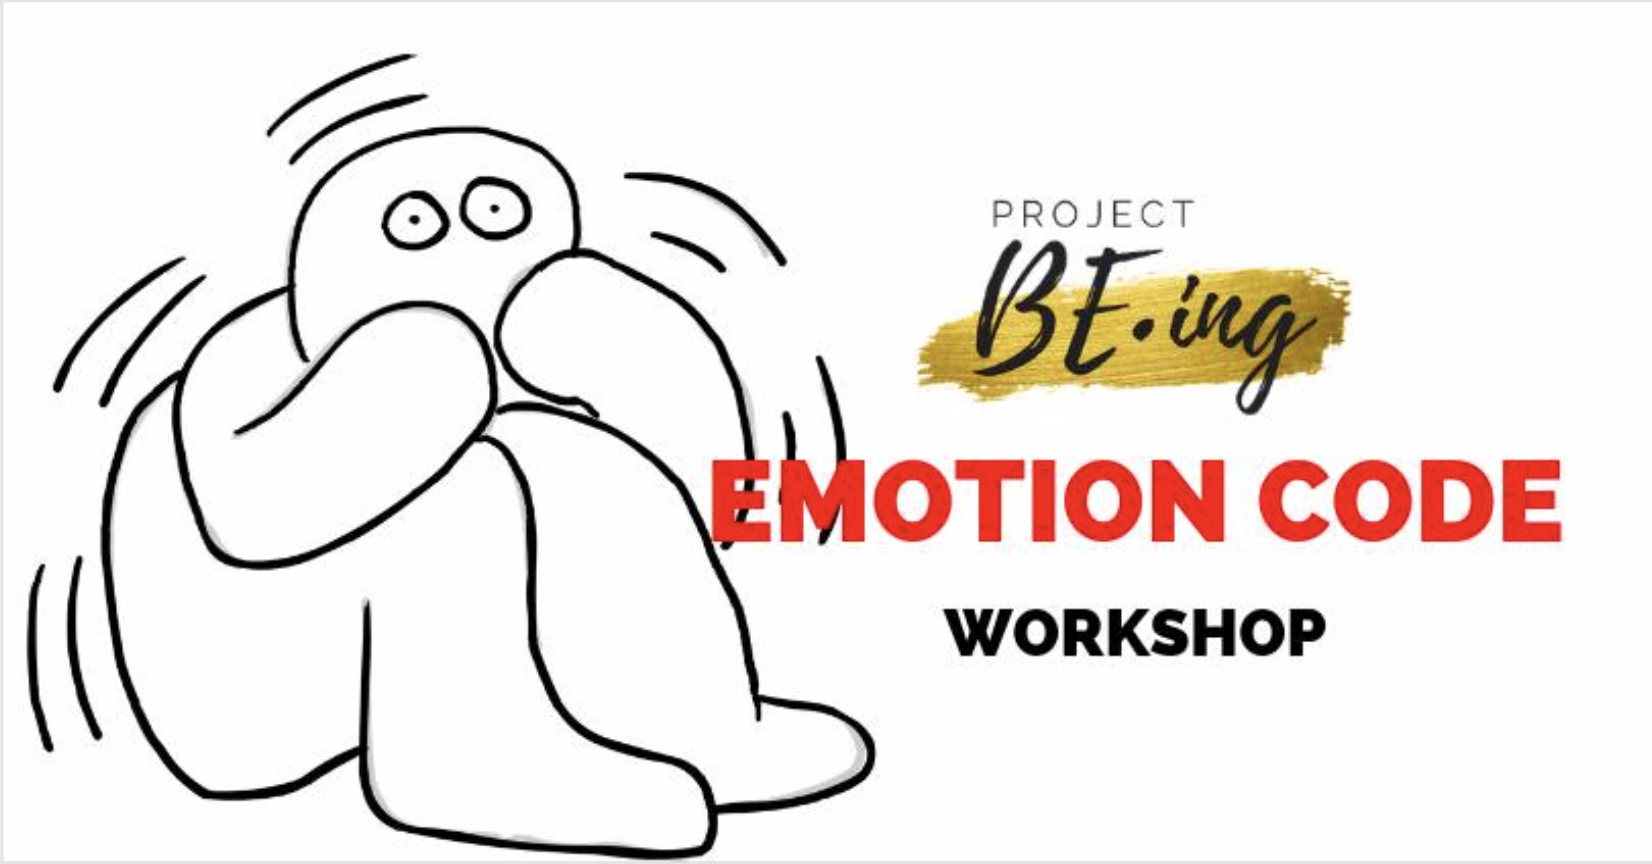 Sun May 19, 1:30pm   - Emotion Code Workshop | Stress Eating  - 1340 S De Anza Blvd, #104 San Jose, CA 95129